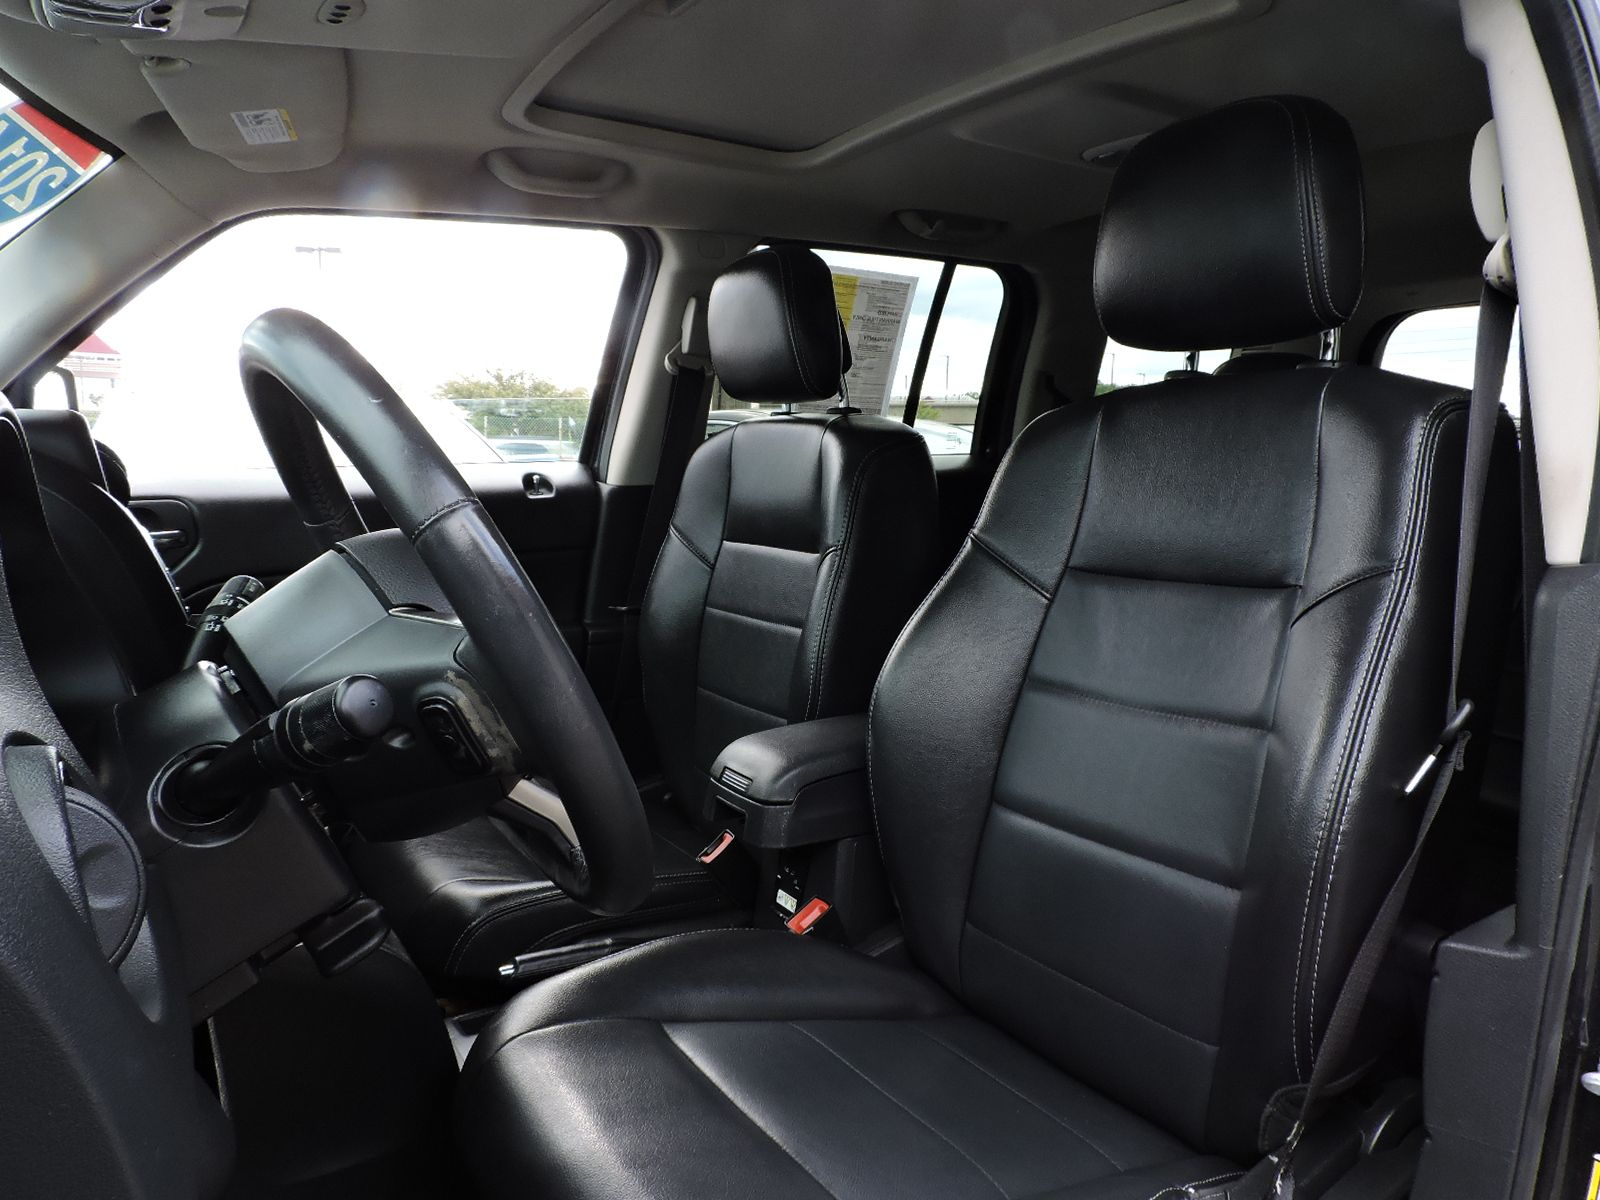 2014 Jeep Patriot Limited AWD